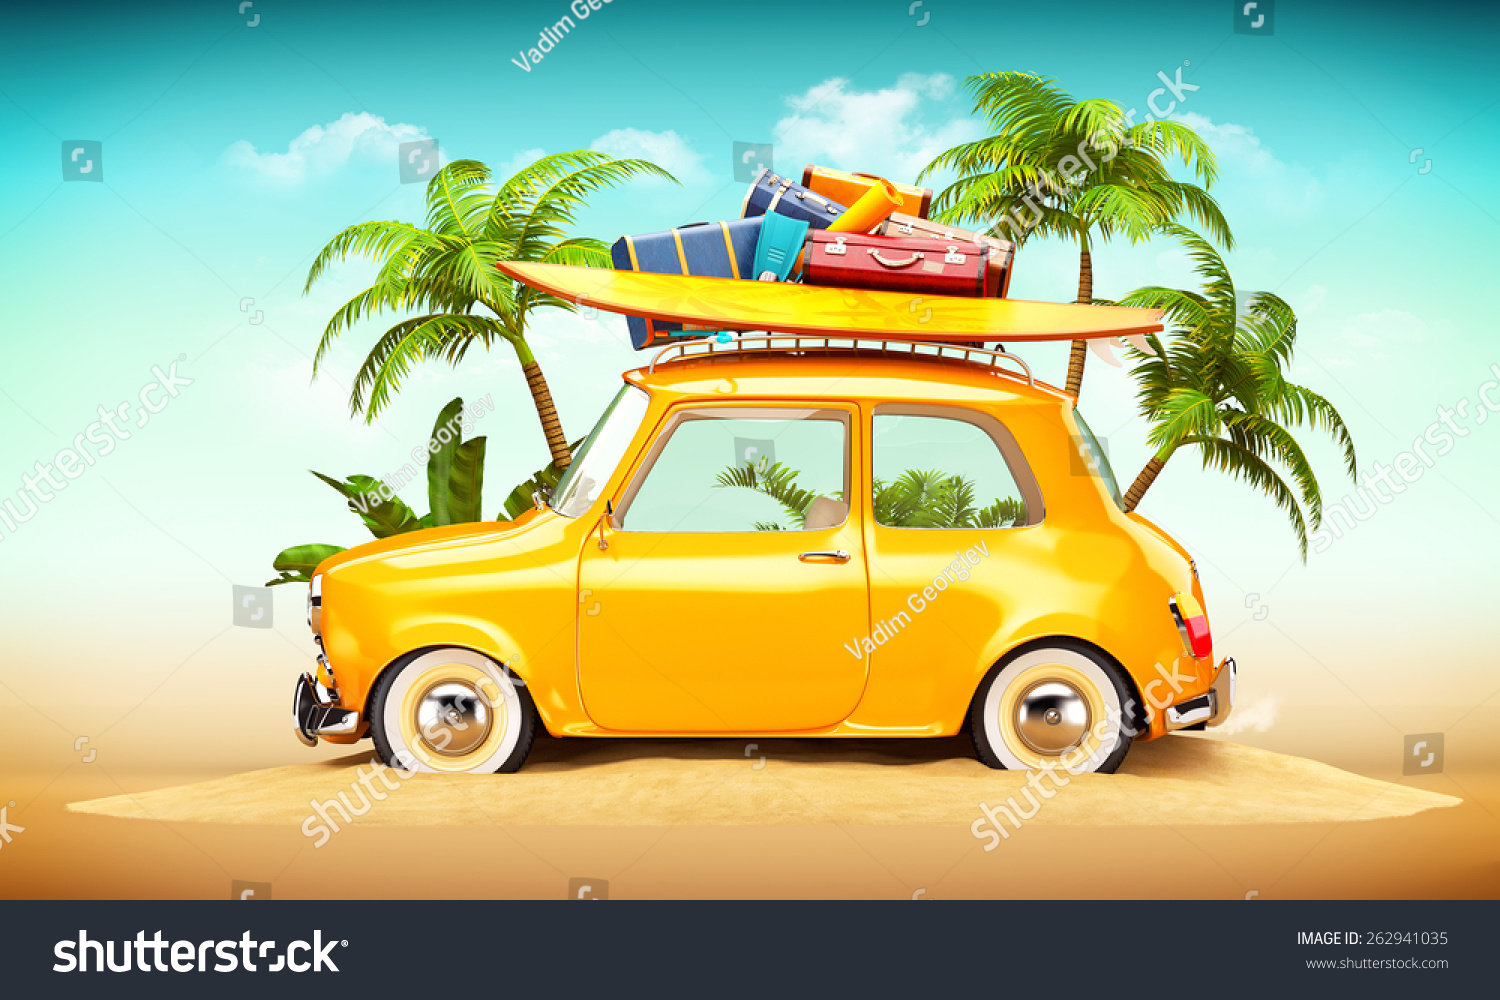 funny retro car surfboard suitcases on stock illustration 262941035 shutterstock. Black Bedroom Furniture Sets. Home Design Ideas